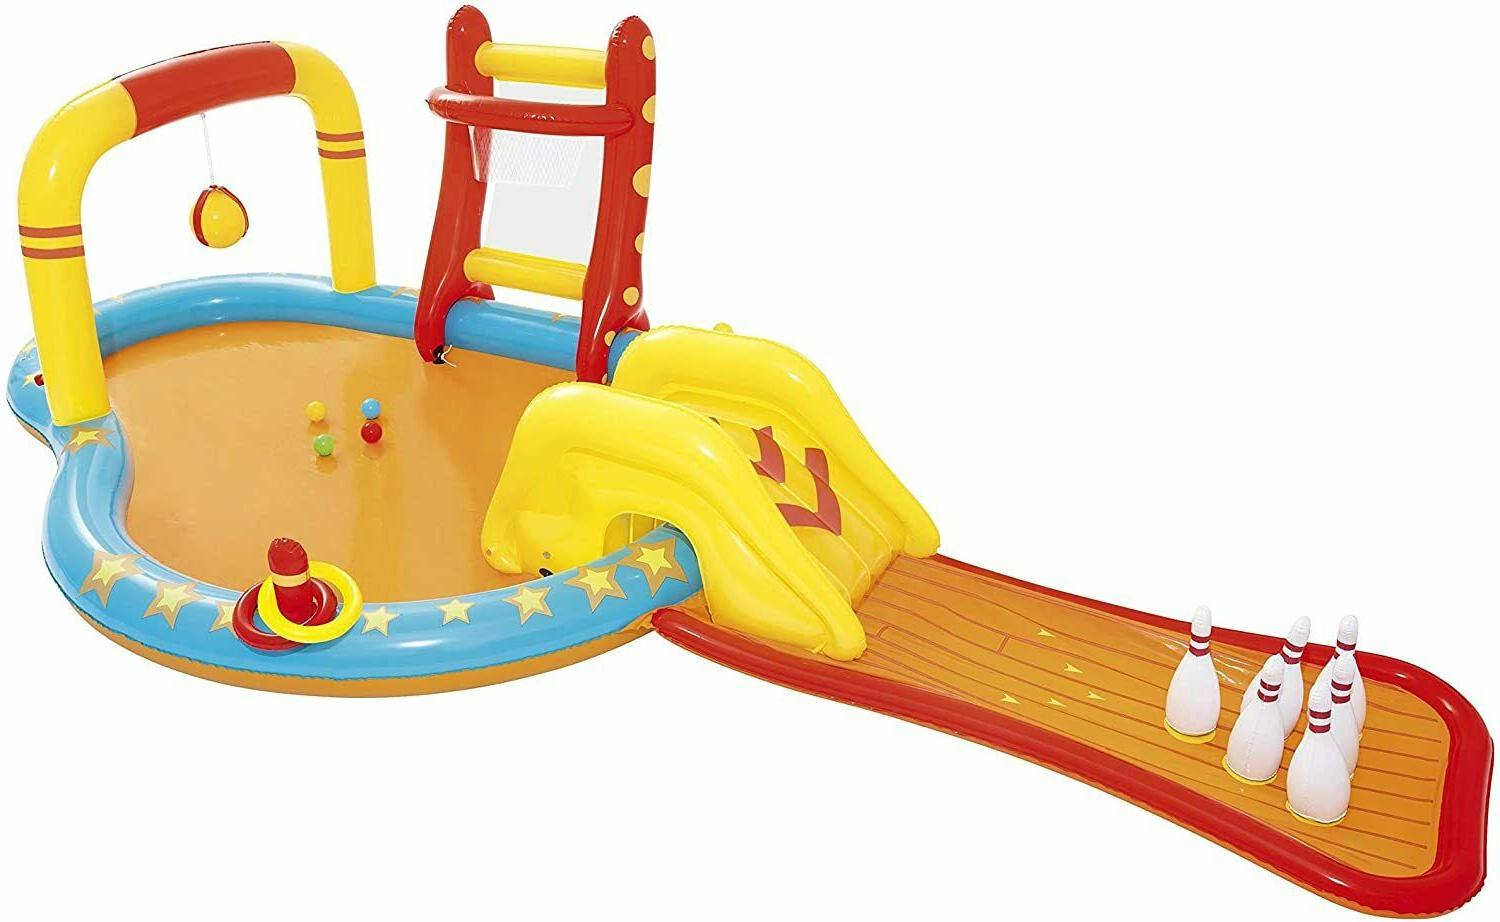 Bestway Play Center - Lil' Champ Pool